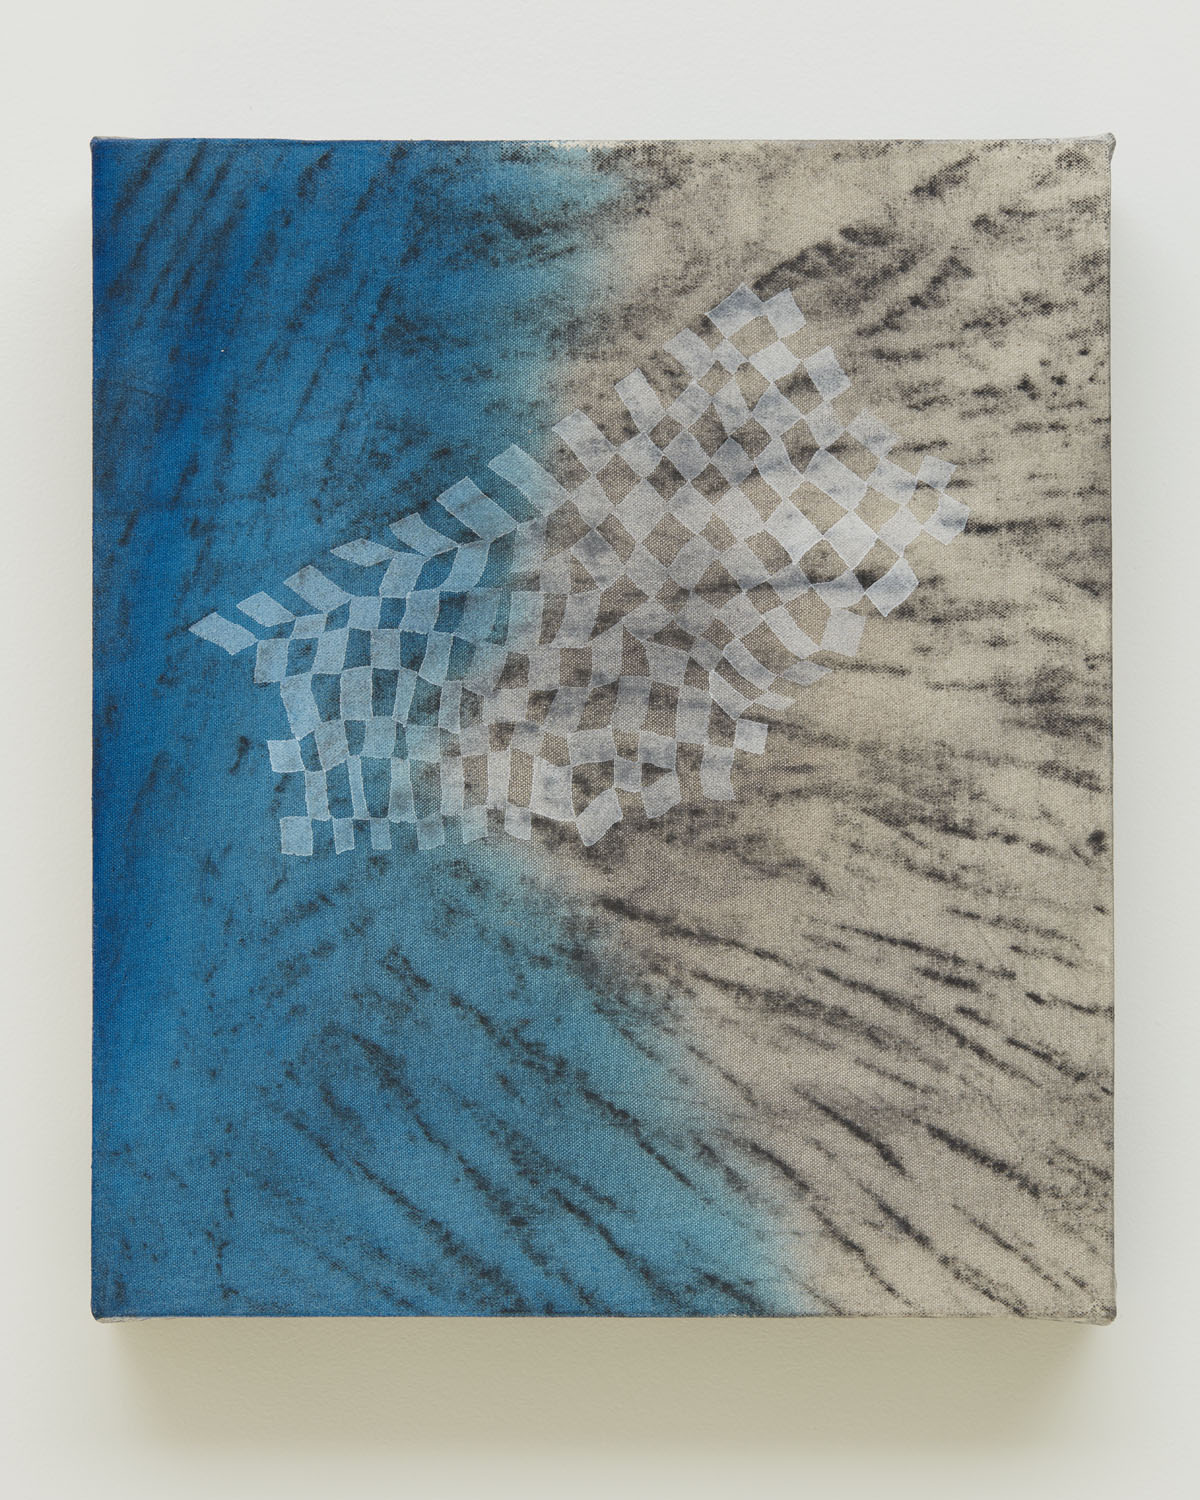 Just A Dream, 2016, by Alyse Rosner, harlequin pattern, white, blue and gray, graphite and acrylic painting on raw canvas.